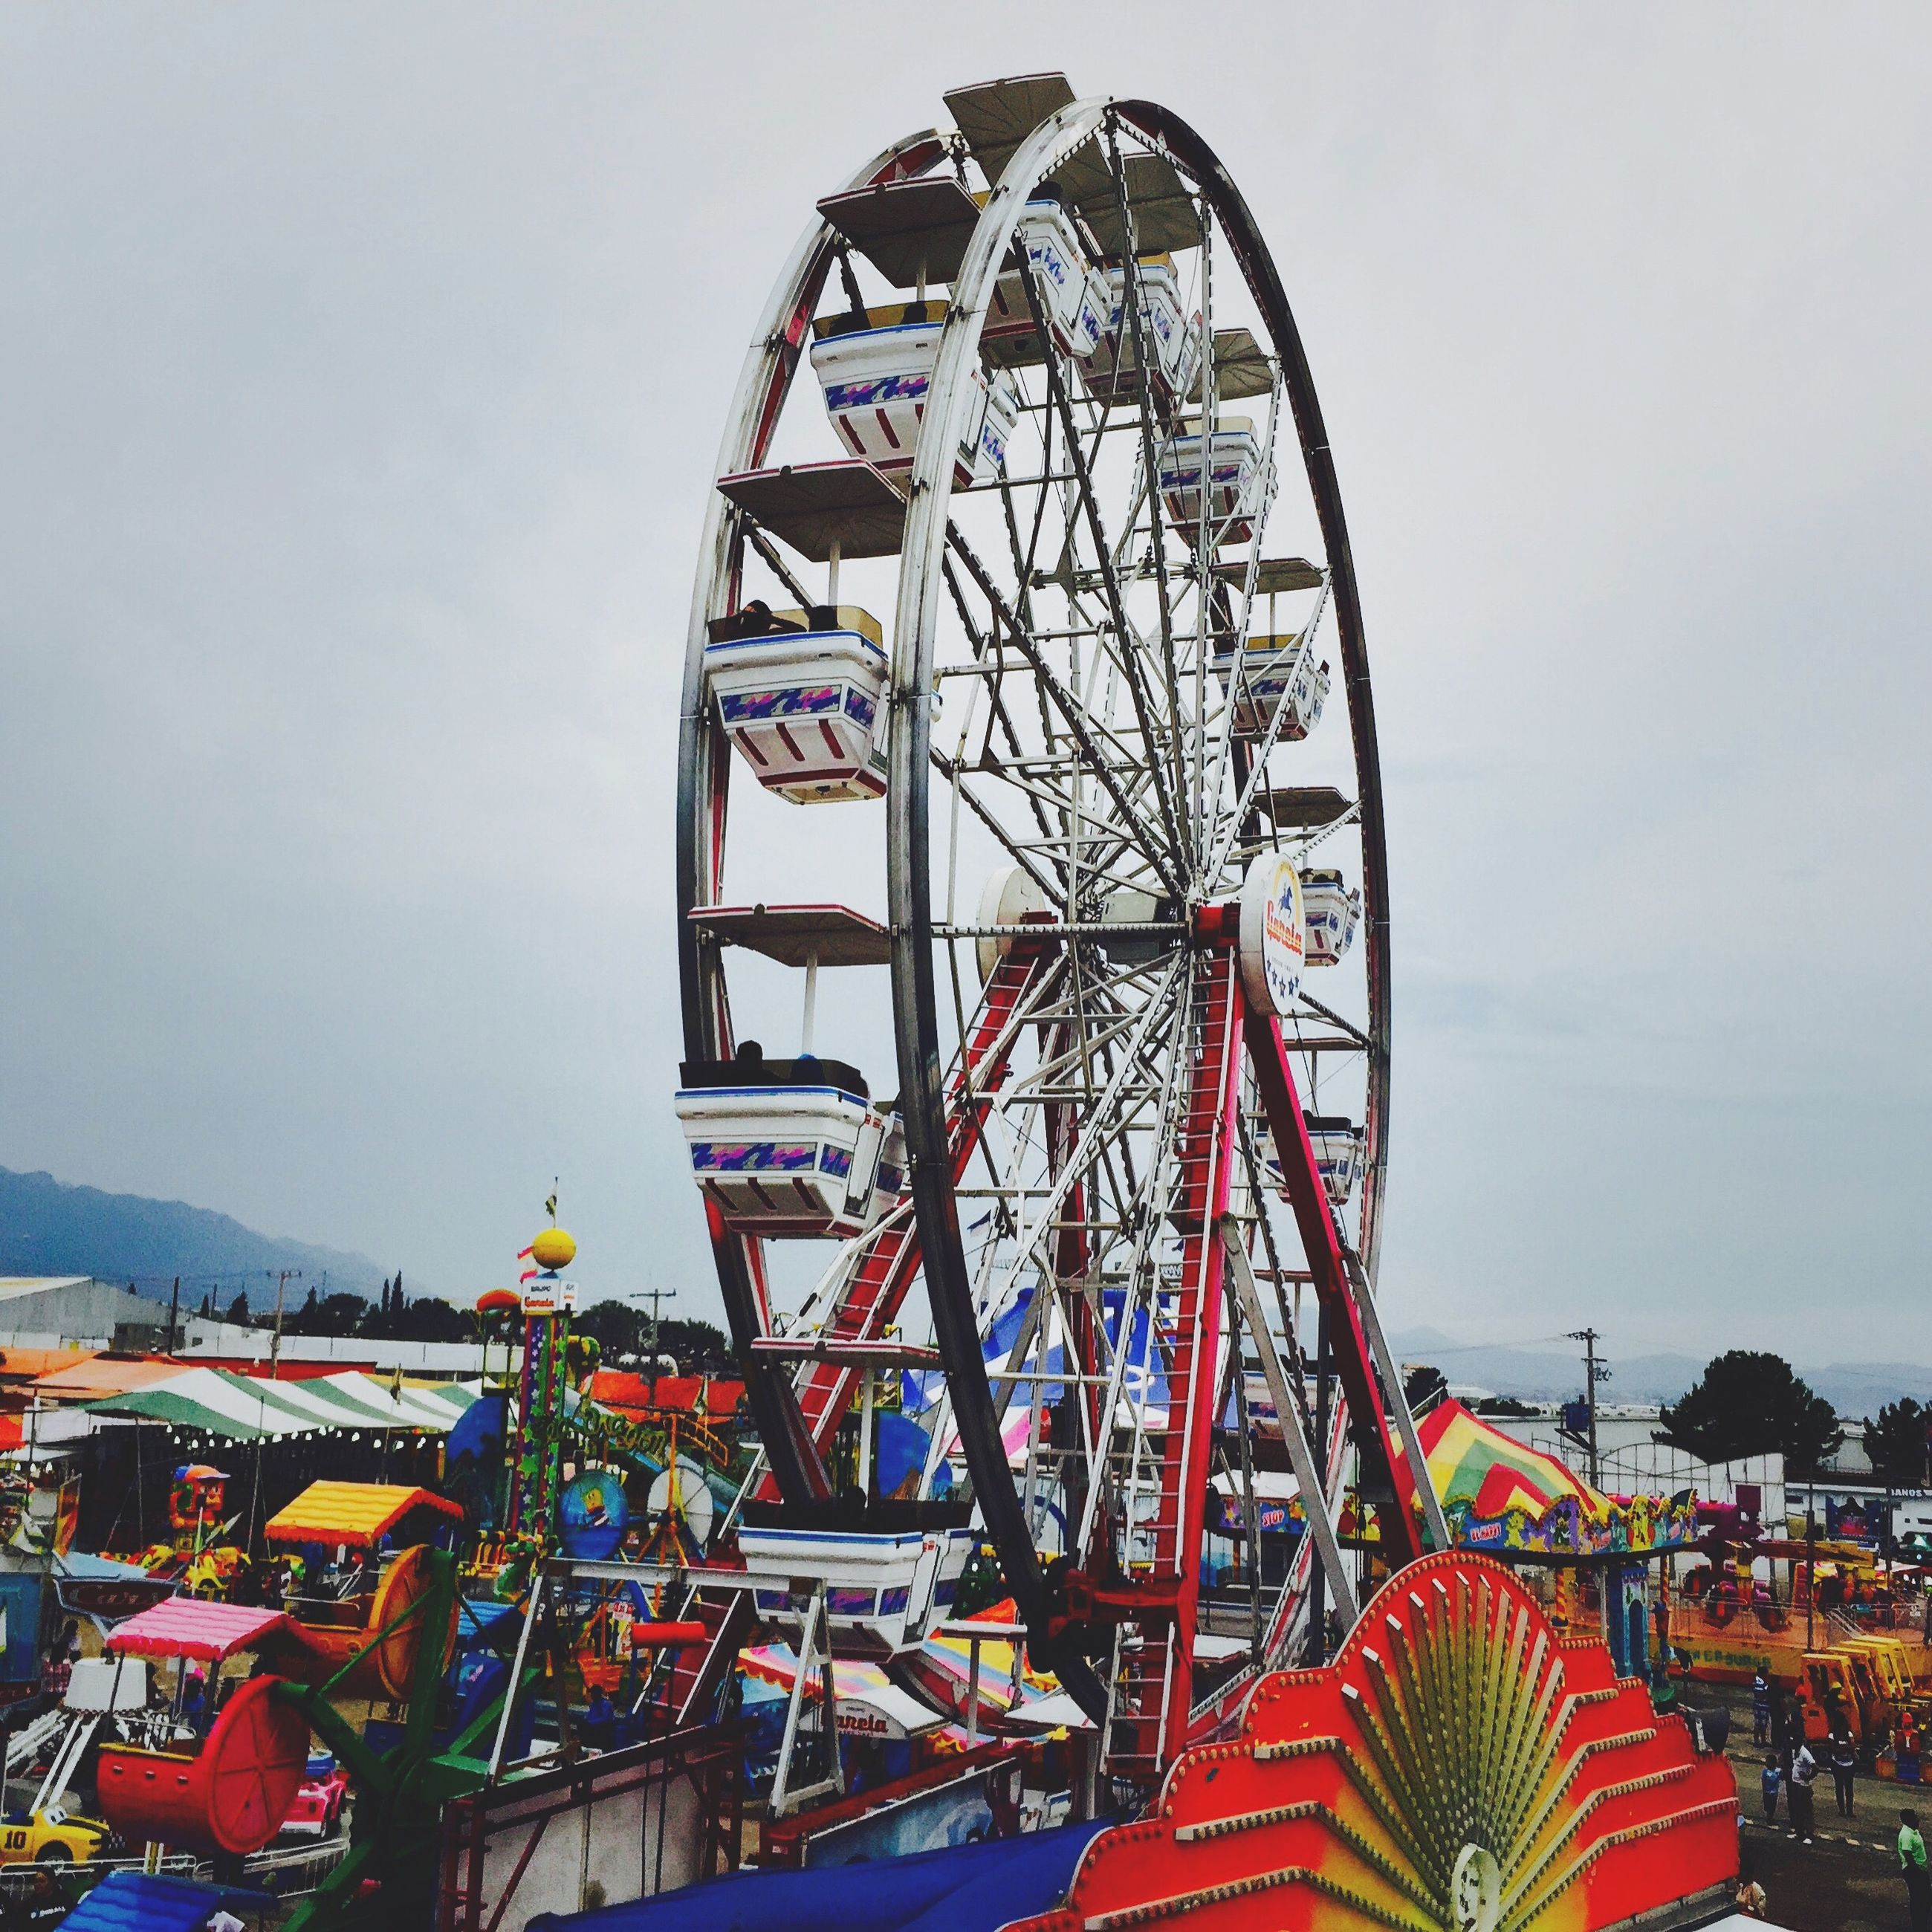 amusement park, amusement park ride, ferris wheel, arts culture and entertainment, sky, low angle view, multi colored, built structure, fun, architecture, outdoors, day, leisure activity, cloud - sky, enjoyment, clear sky, no people, transportation, traveling carnival, incidental people